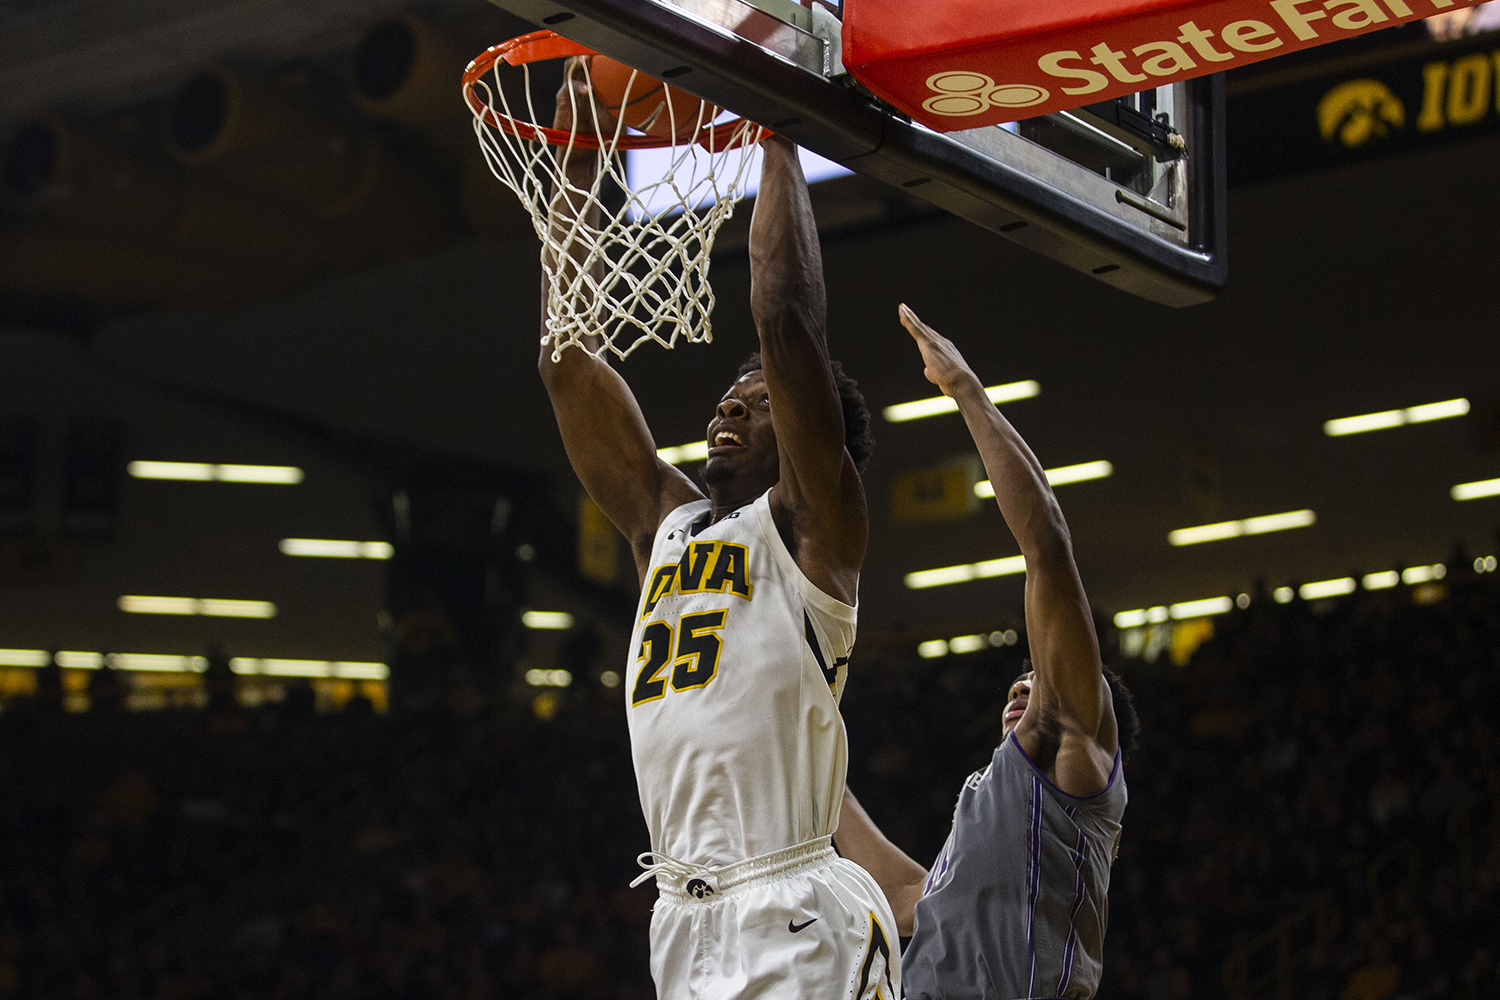 Iowa+forward+Tyler+Cook+dunks+the+ball+during+the+Iowa%2FNorthwestern+men%27s+basketball+game+at+Carver-Hawkeye+Arena+on+Sunday%2C+February+10%2C+2019.+The+Hawkeyes+defeated+the+Wildcats%2C+80-79.+